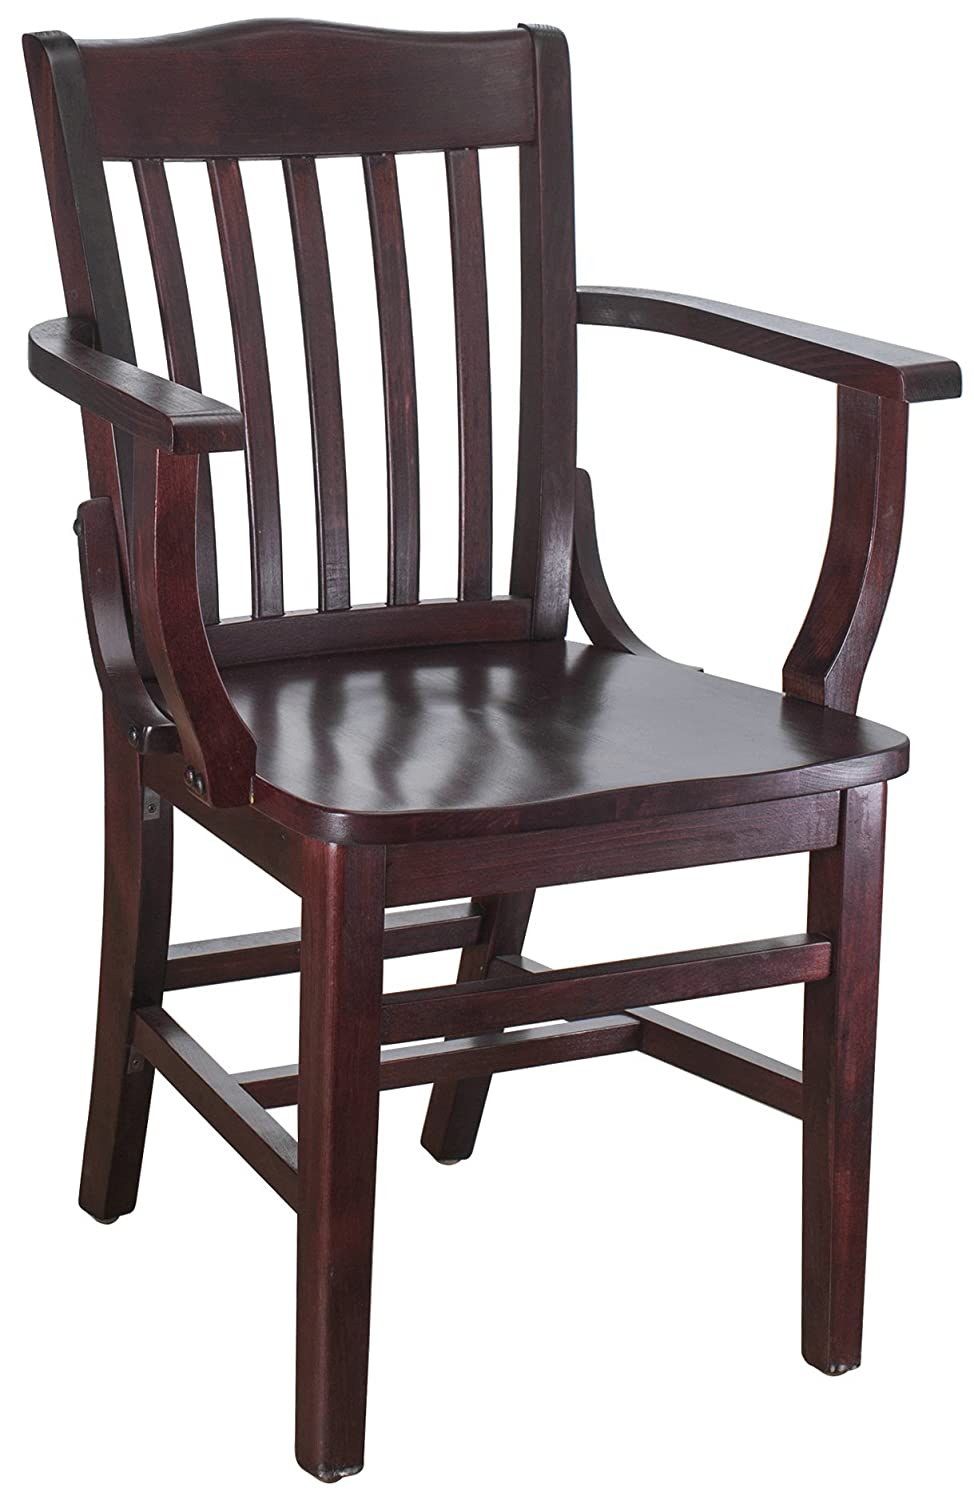 Beechwood Mountain BSD-2A-Dm Solid Beech Wood Arm Chair in Dark Mahogany for Kitchen Dining